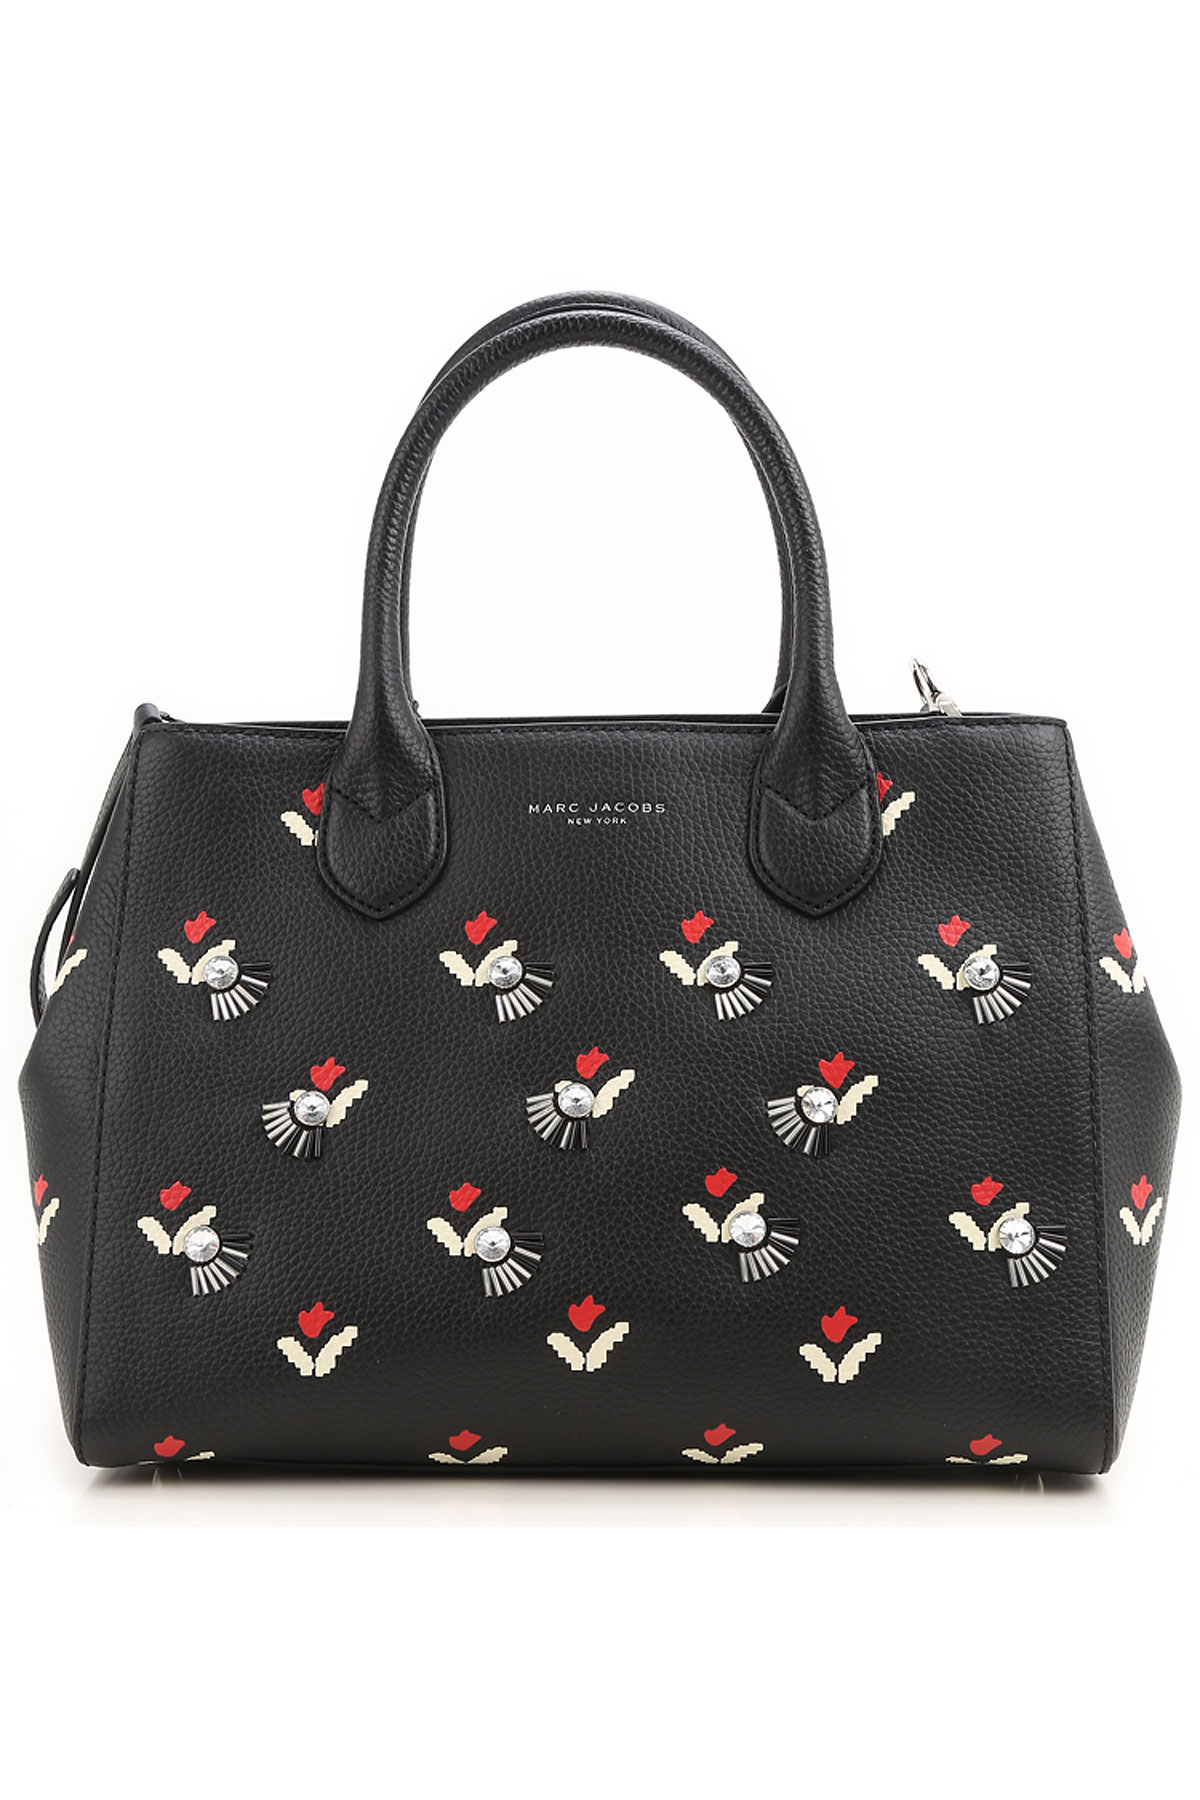 Marc Jacobs Tote Bag, Black, Leather, 2017